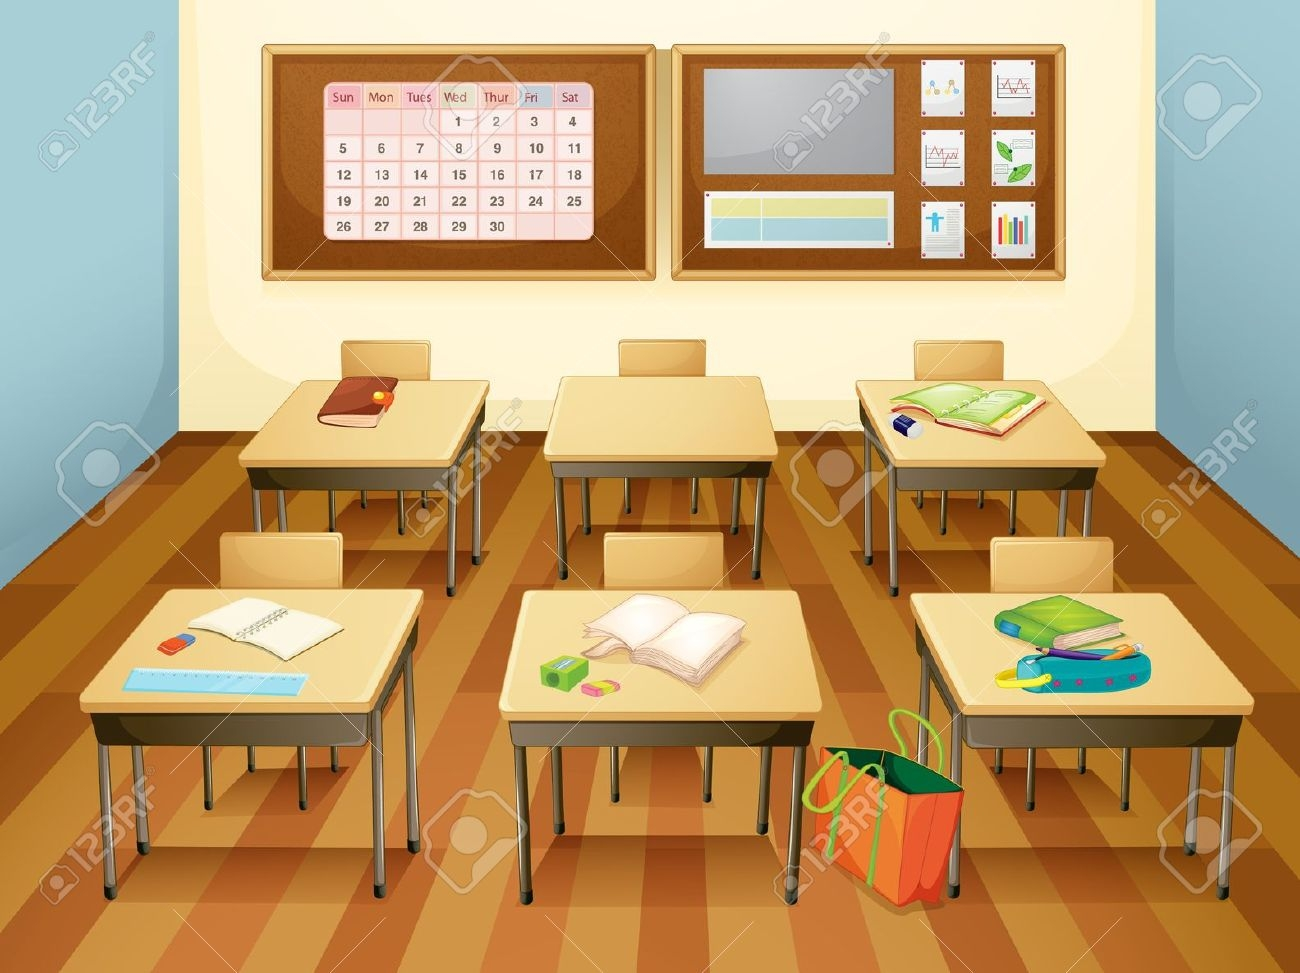 classroom clipart gallery